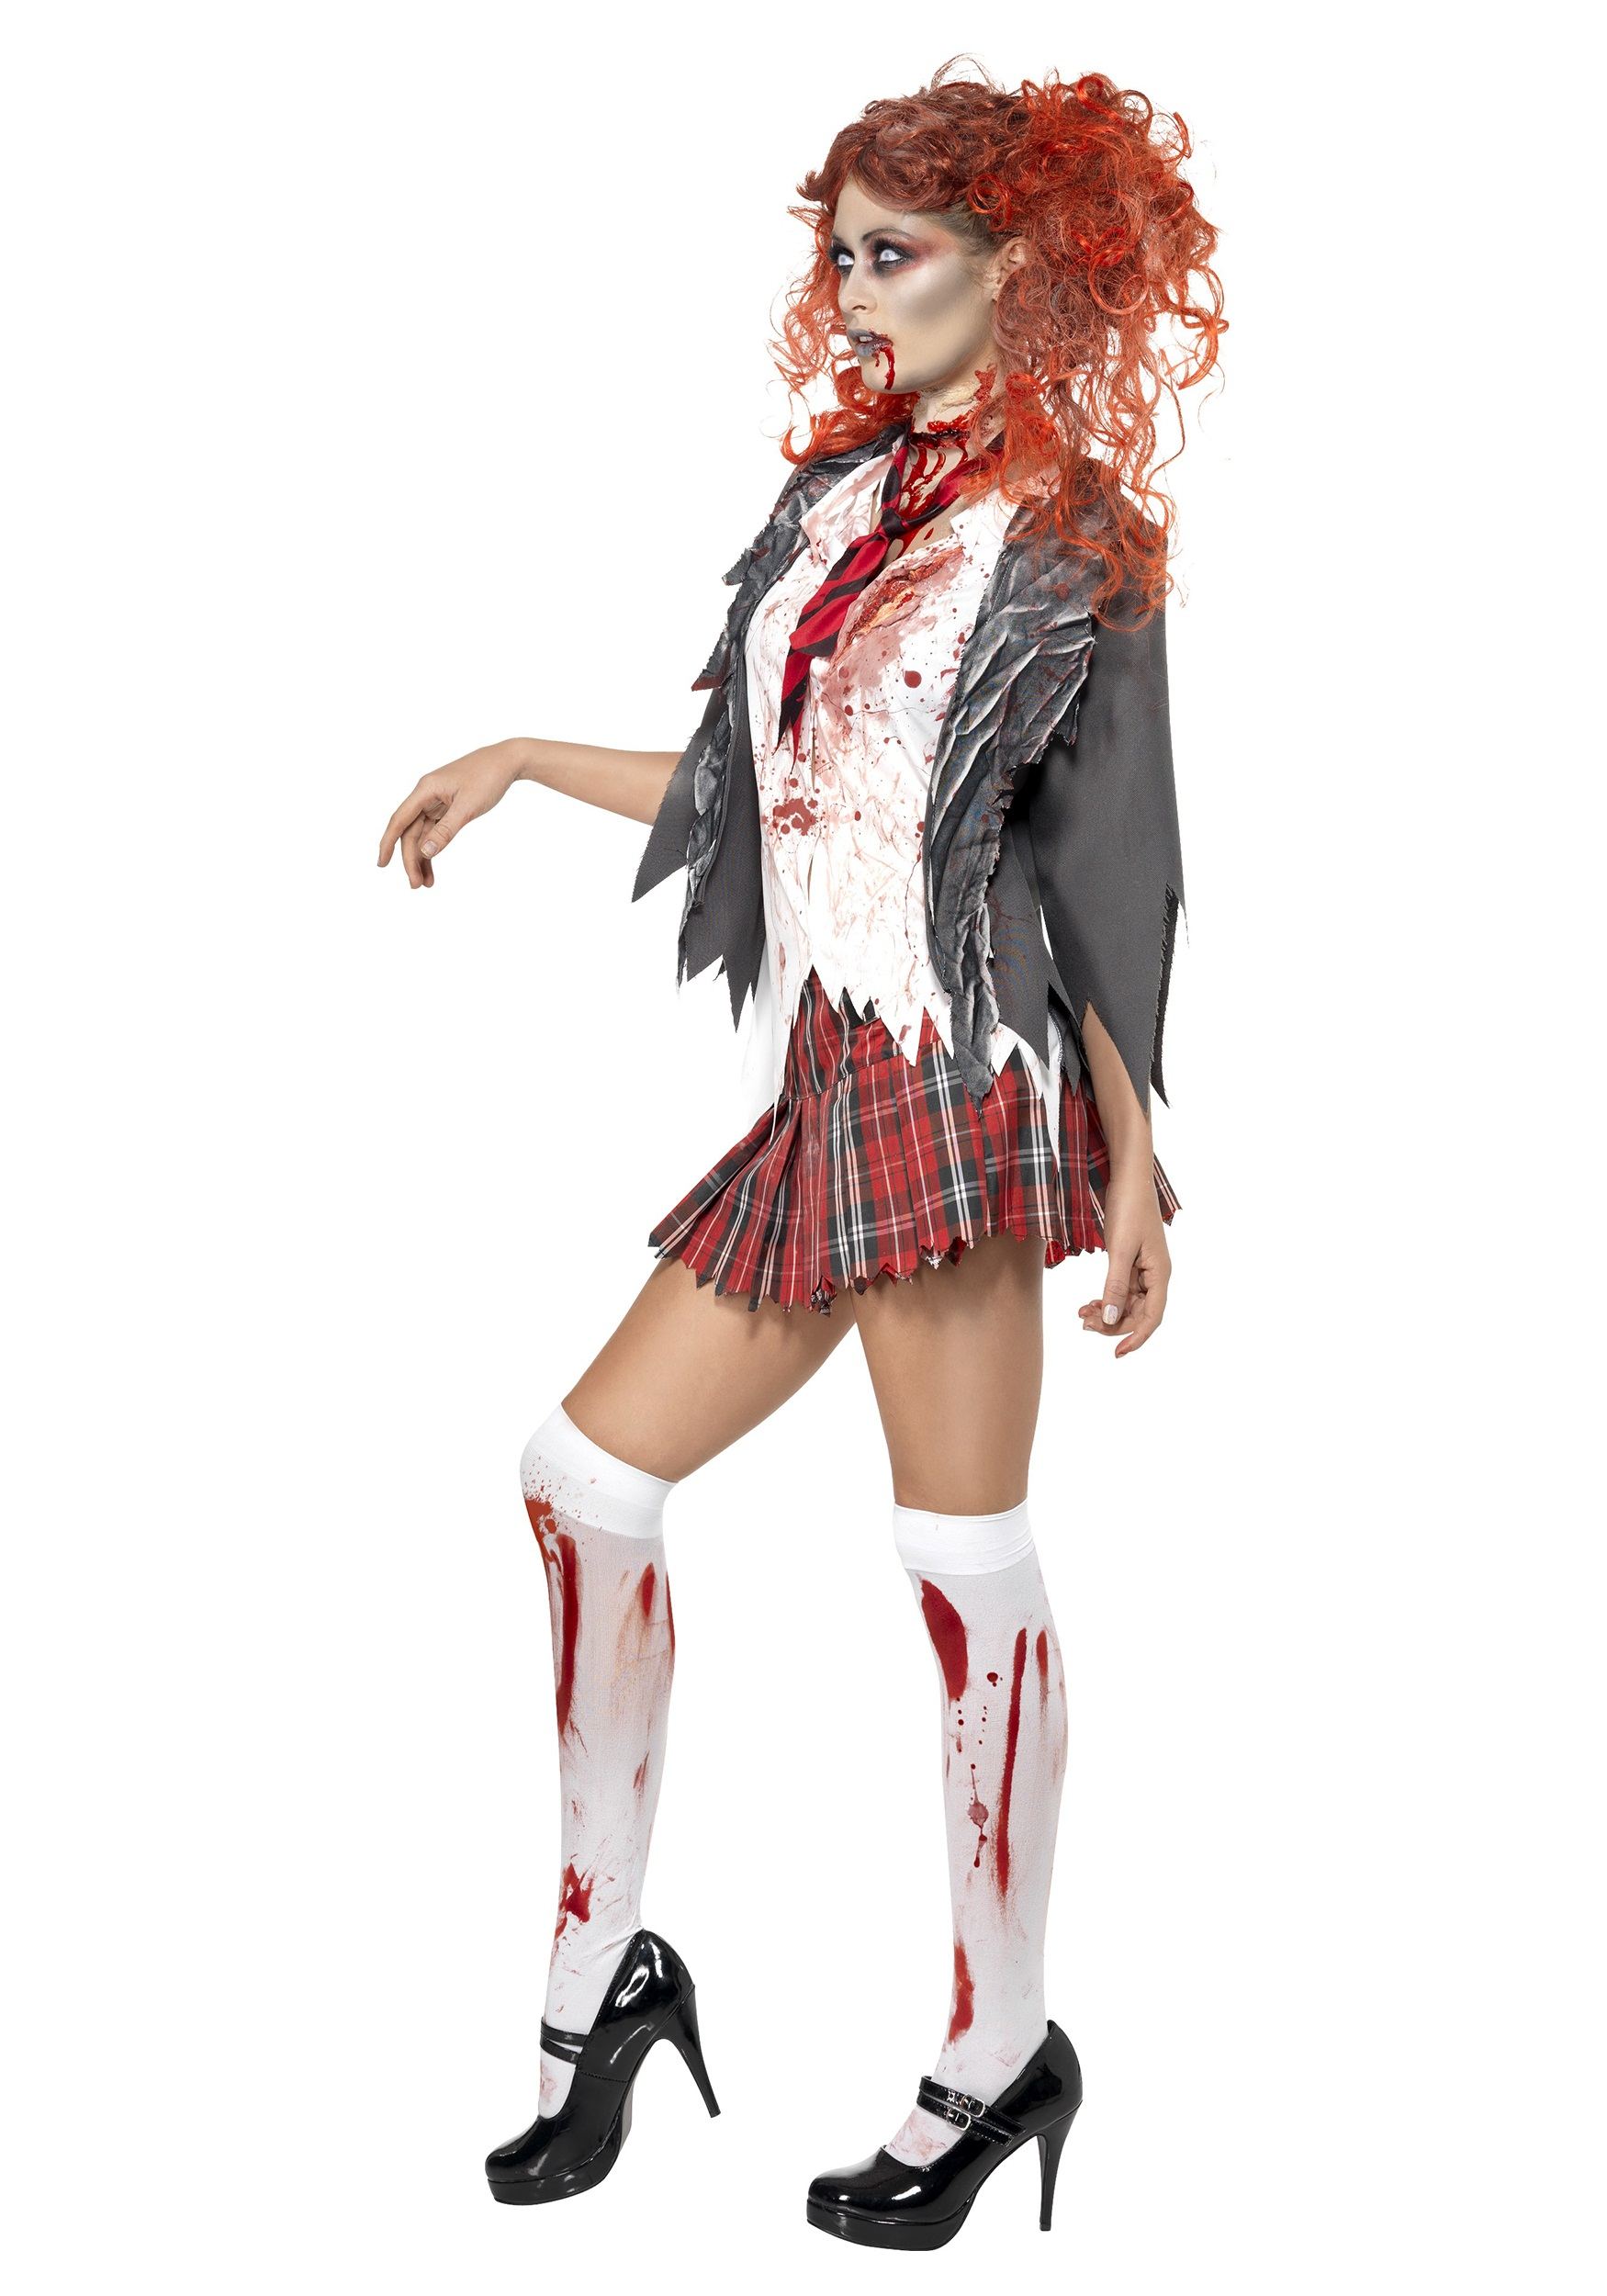 Halloween Zombie Costumes For Girls.School Girl Zombie Costume